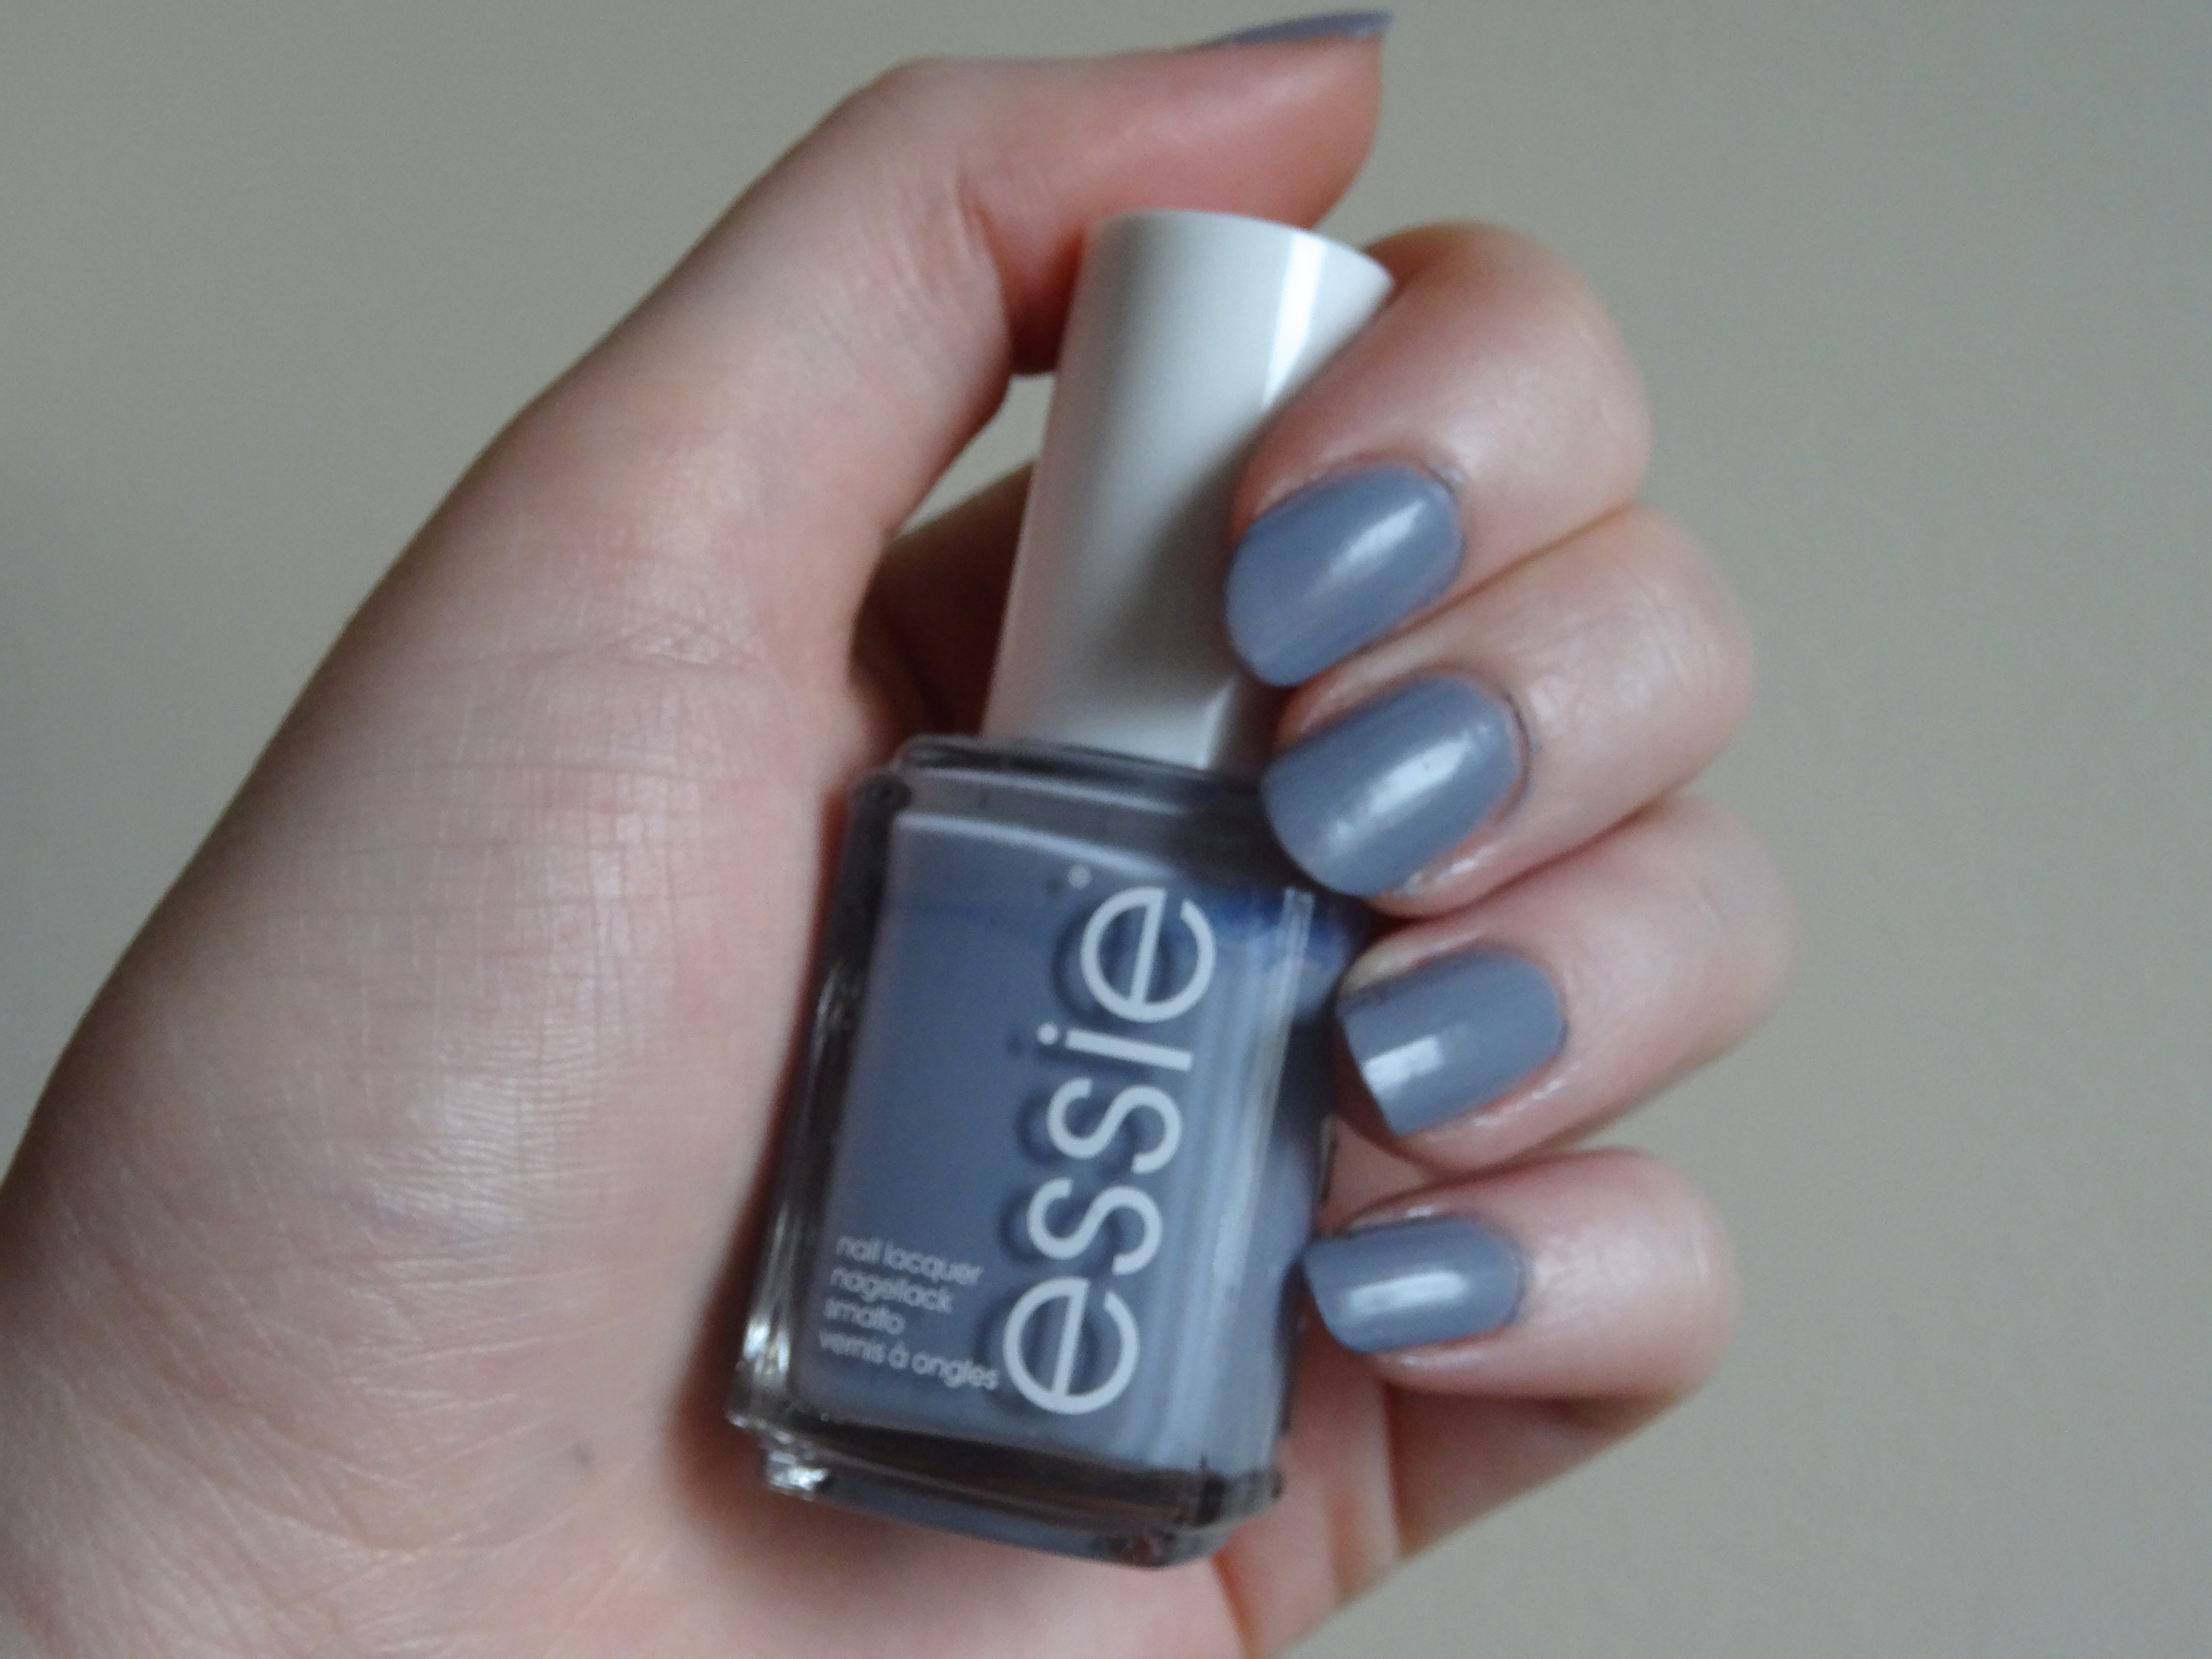 Essie's 'Cocktail Bling' Nail Varnish Review - The Rambles of Nuggetstump